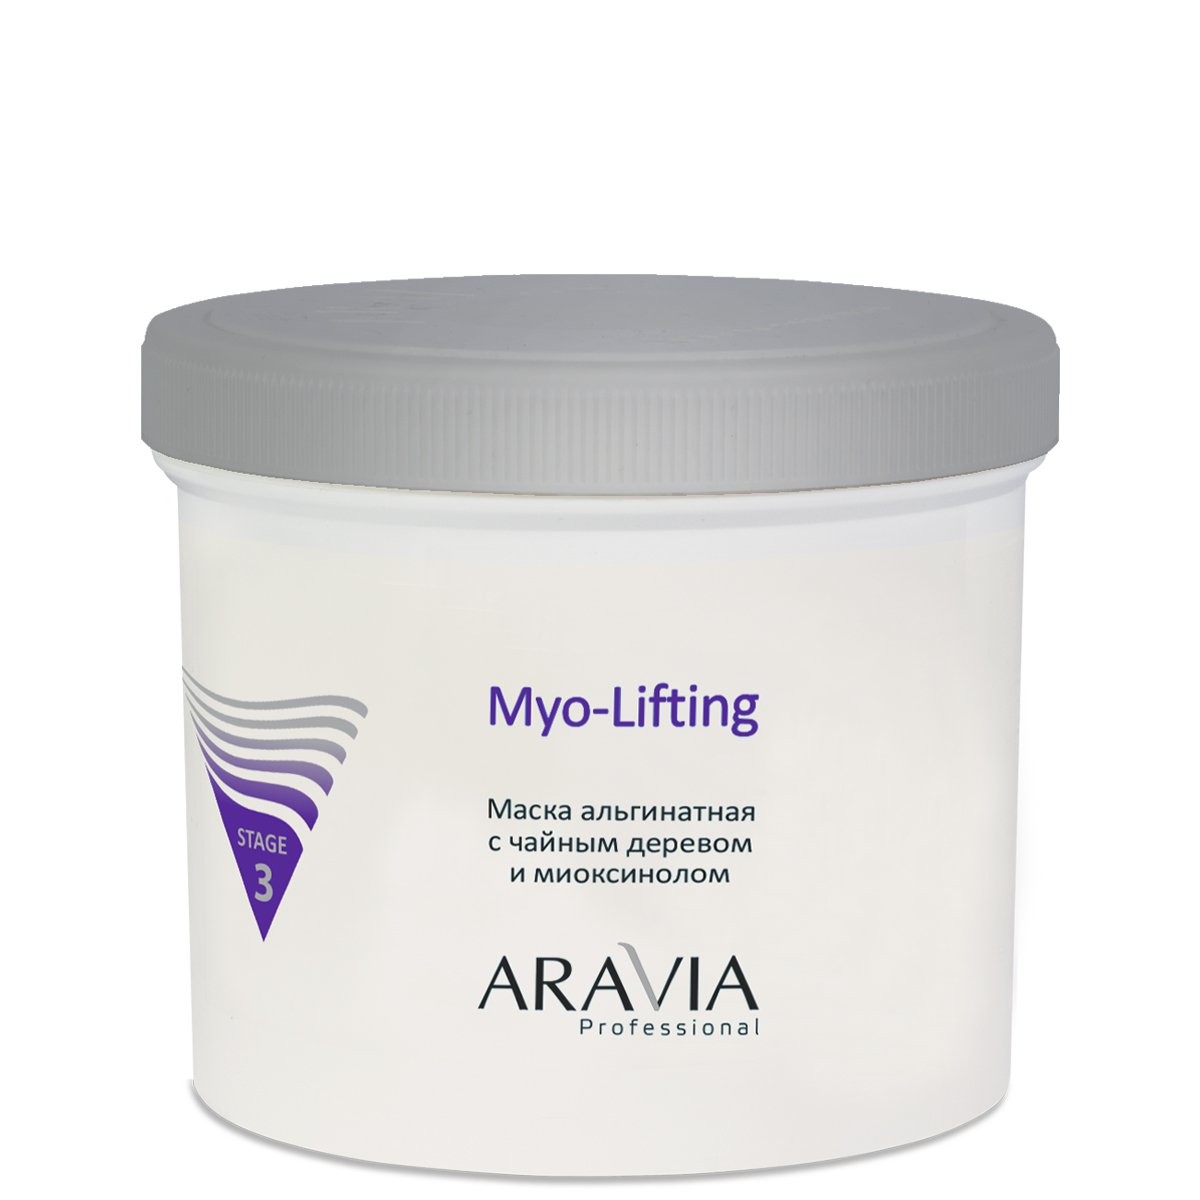 Aravia Myo-Lifting Маска альгинатная с чайным деревом и миоксинолом (550 ml) 6011